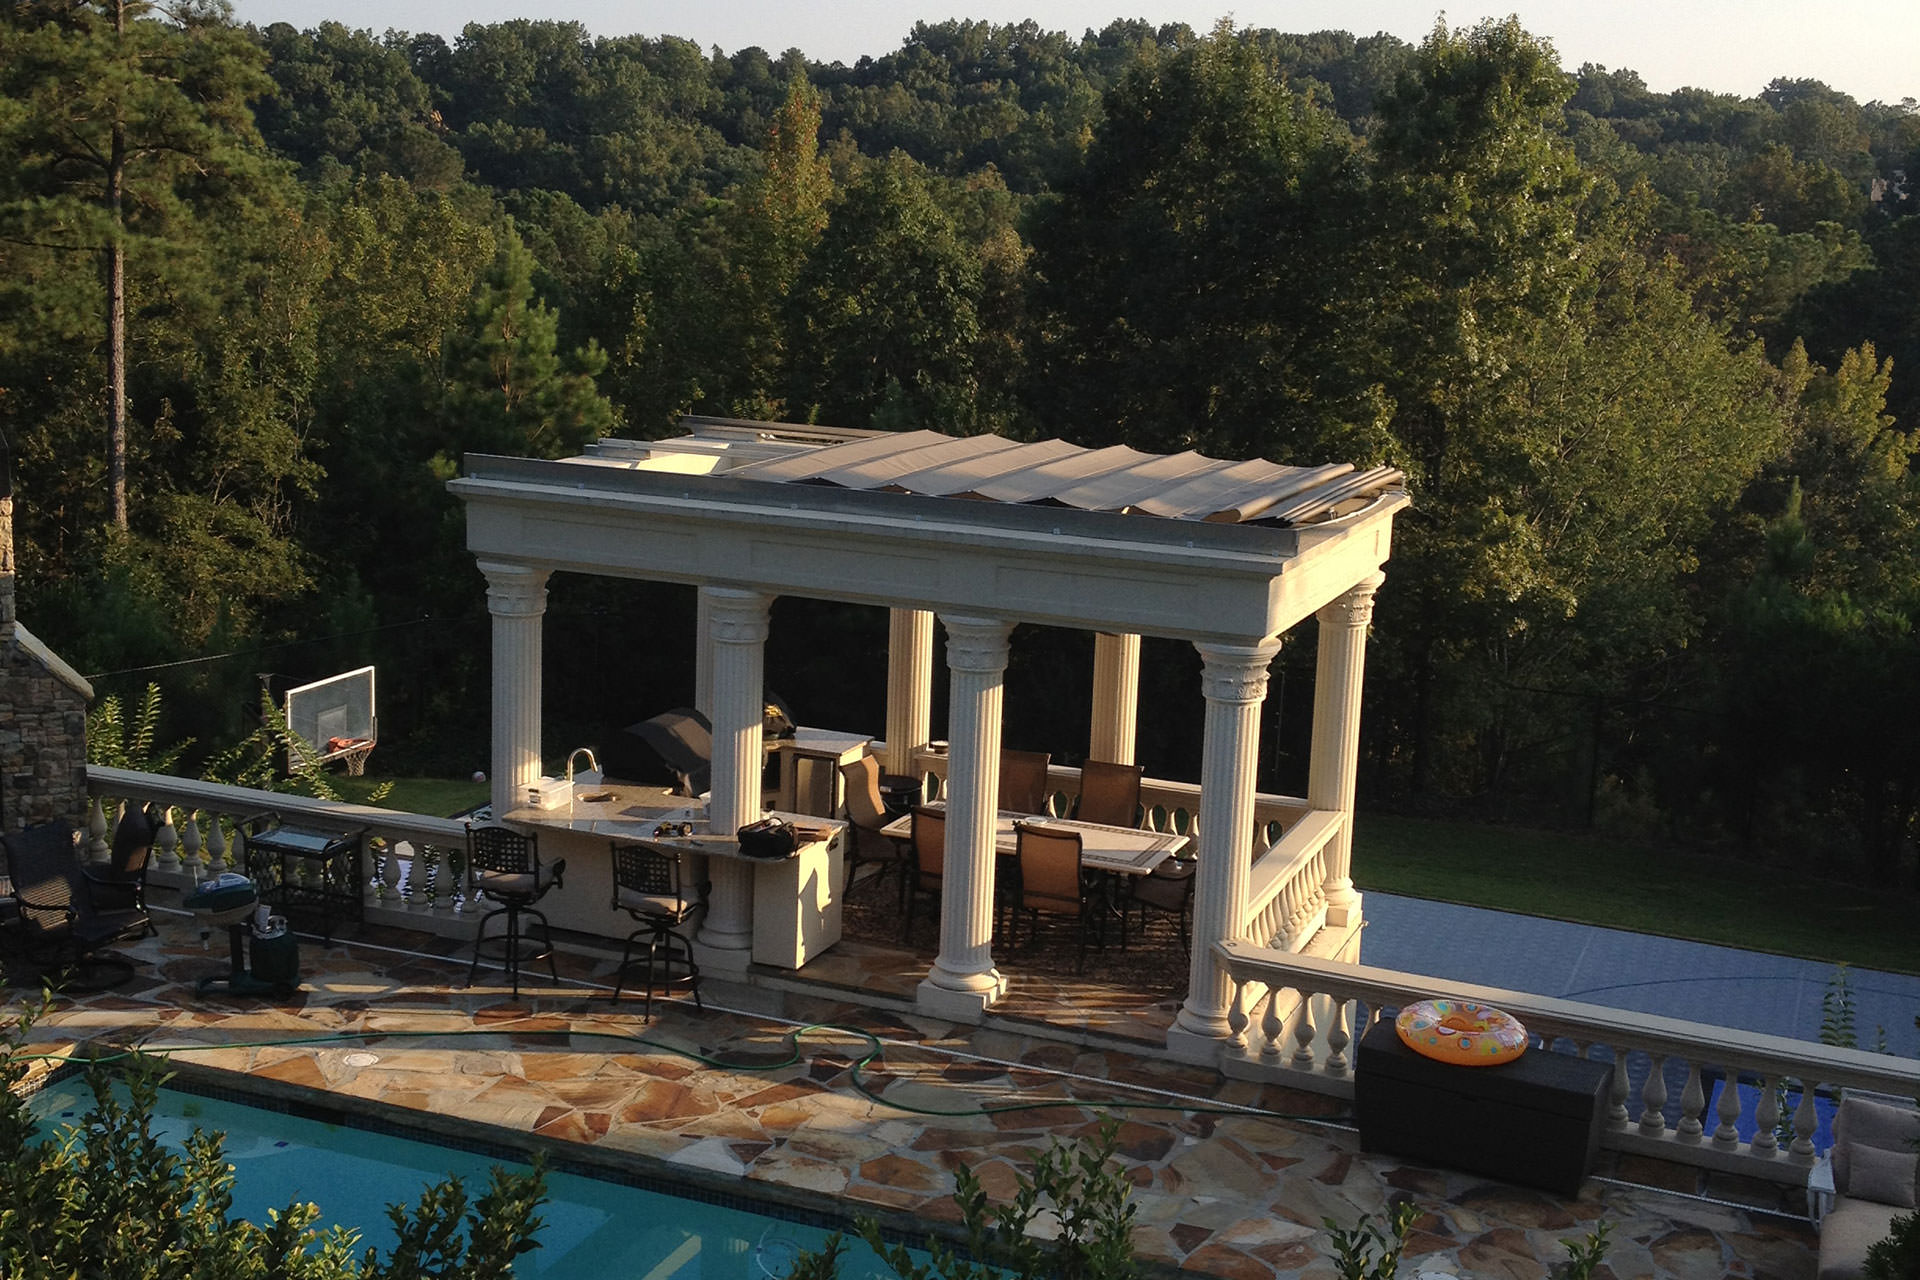 Outdoor Structures - Retractable Canopy